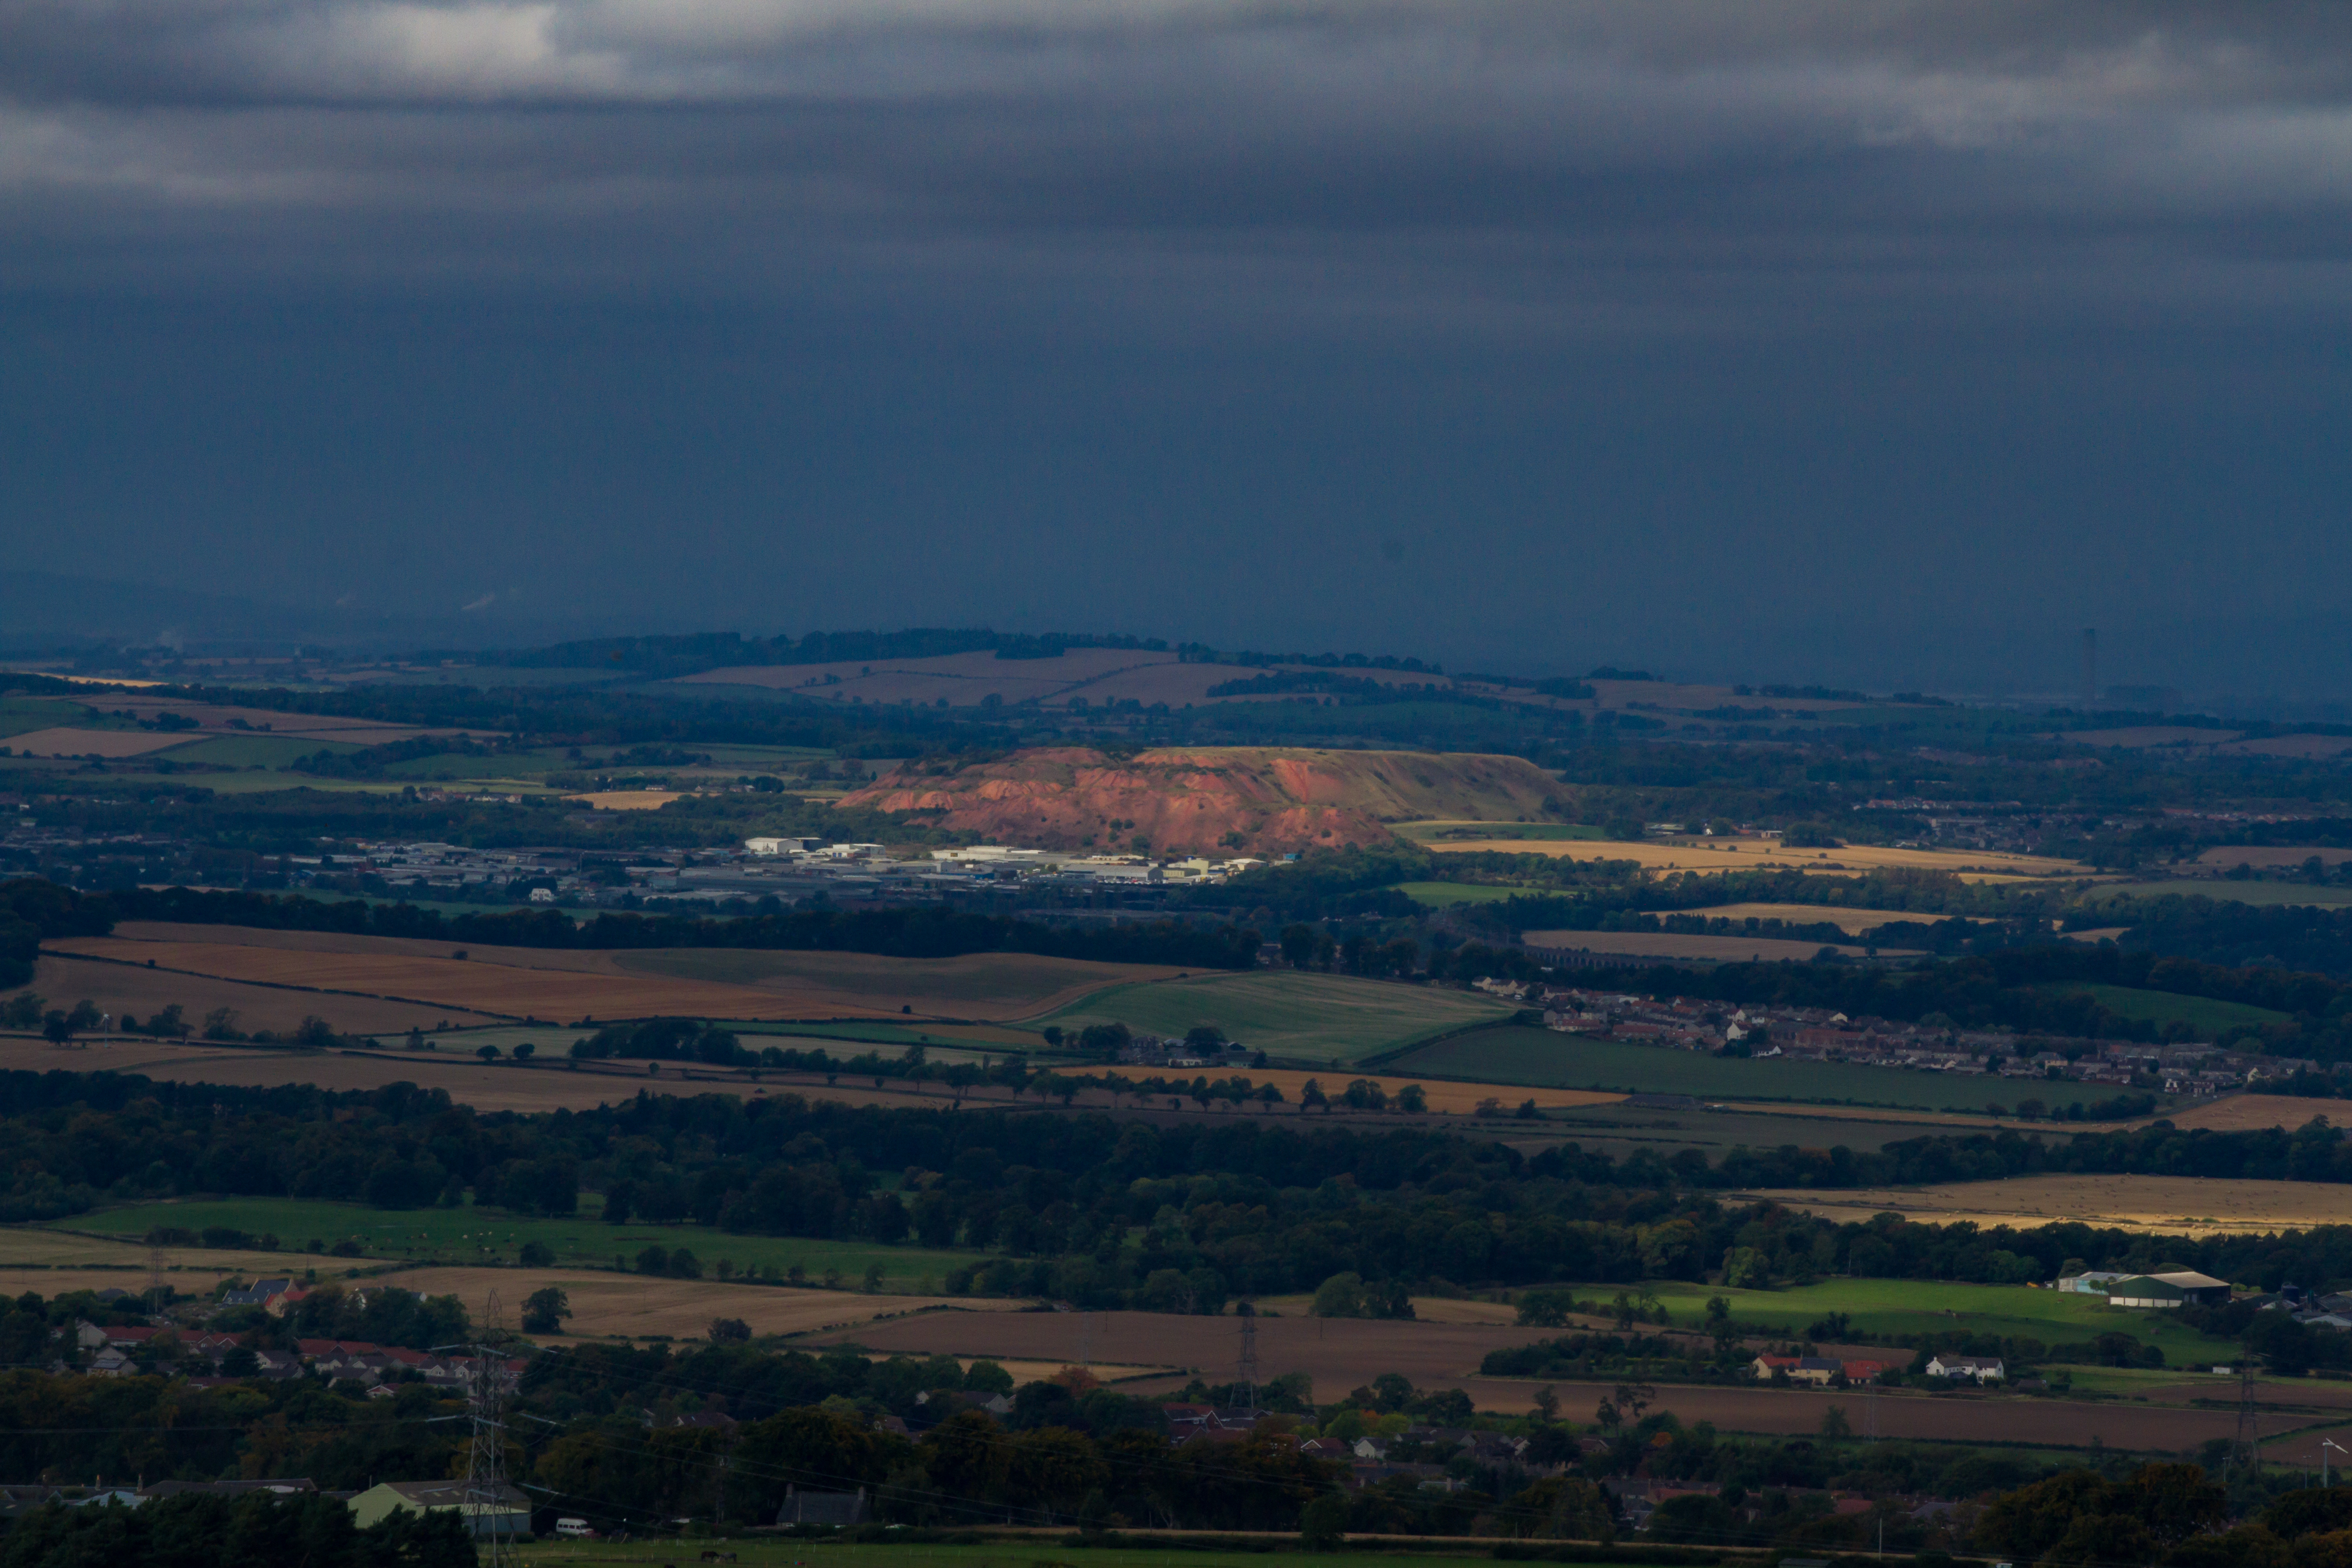 The Red Hills of Broxburn